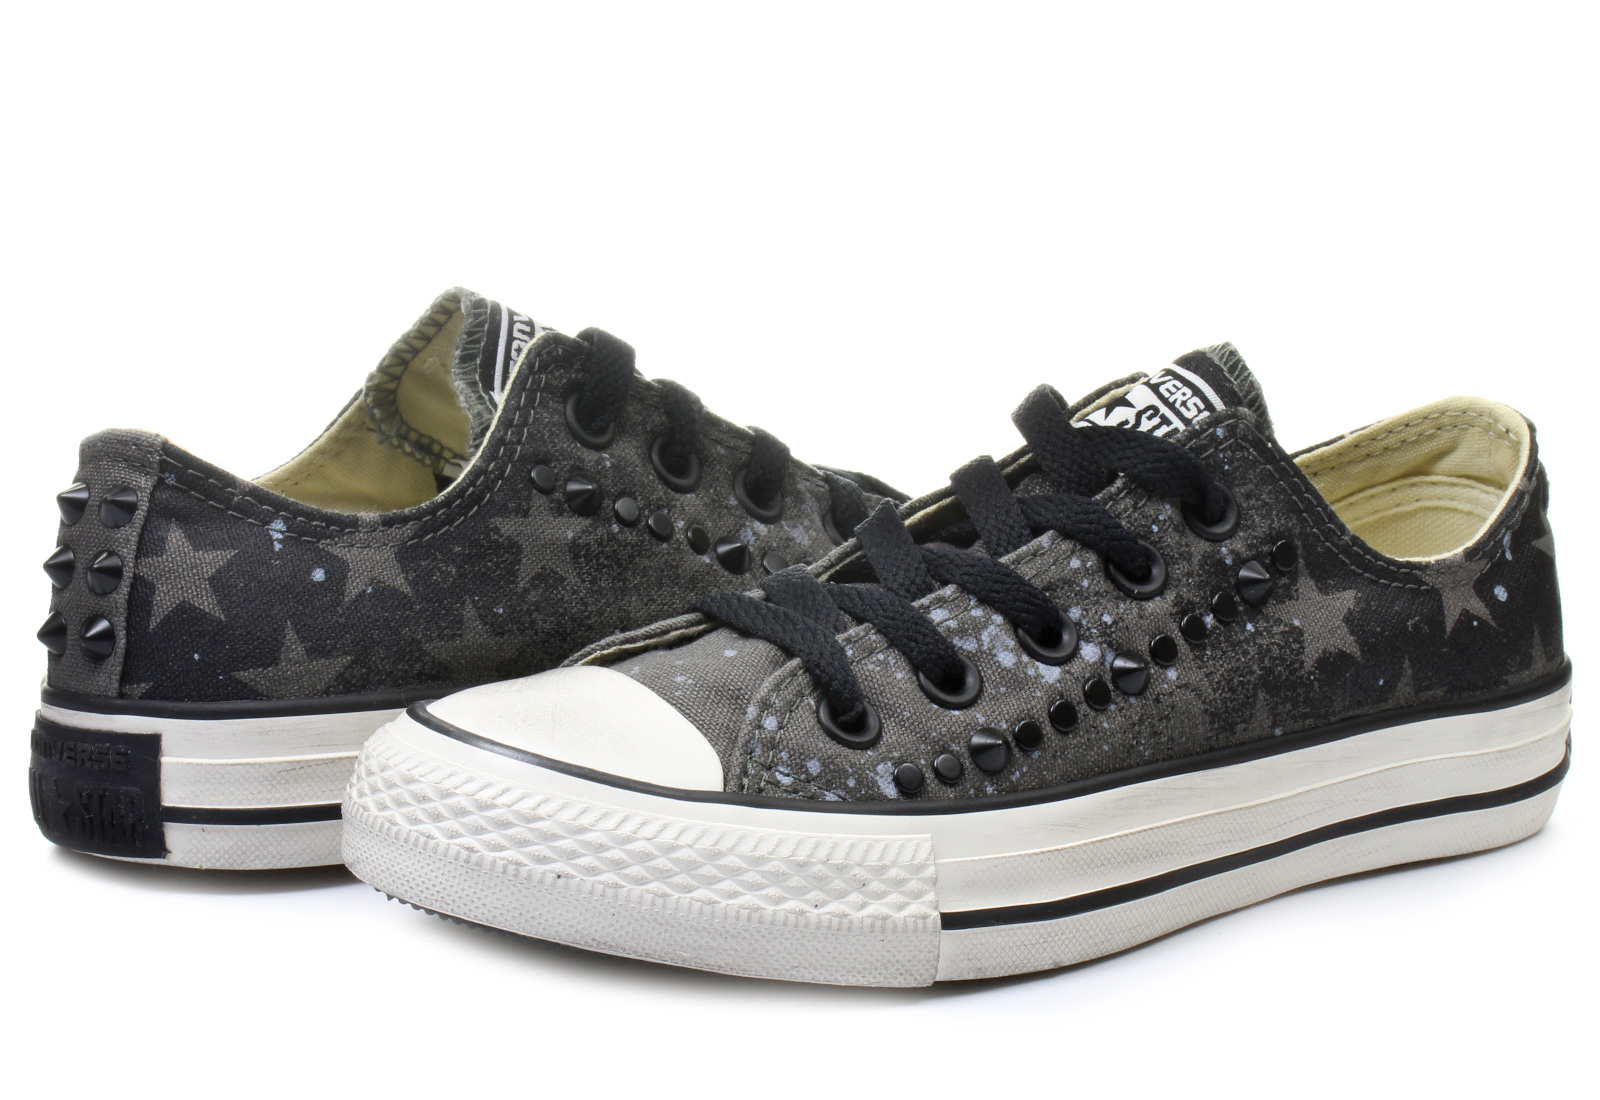 Gold Studded Converse Shoes